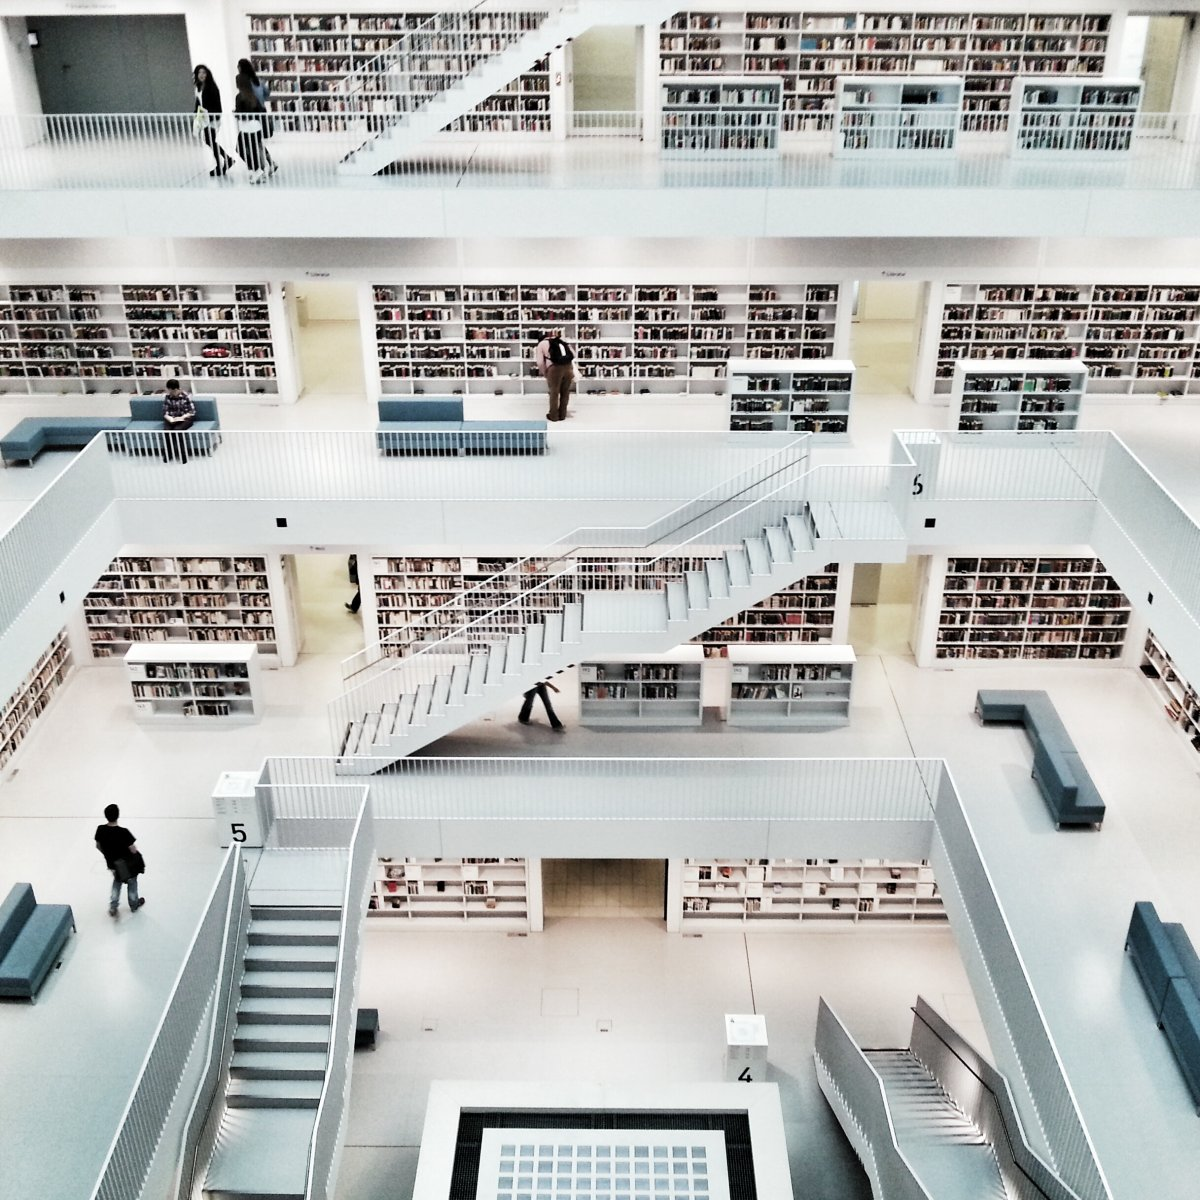 french-photographer-gerard-trang-shot-this-architecturally-stunning-library-in-stuttgart-germany